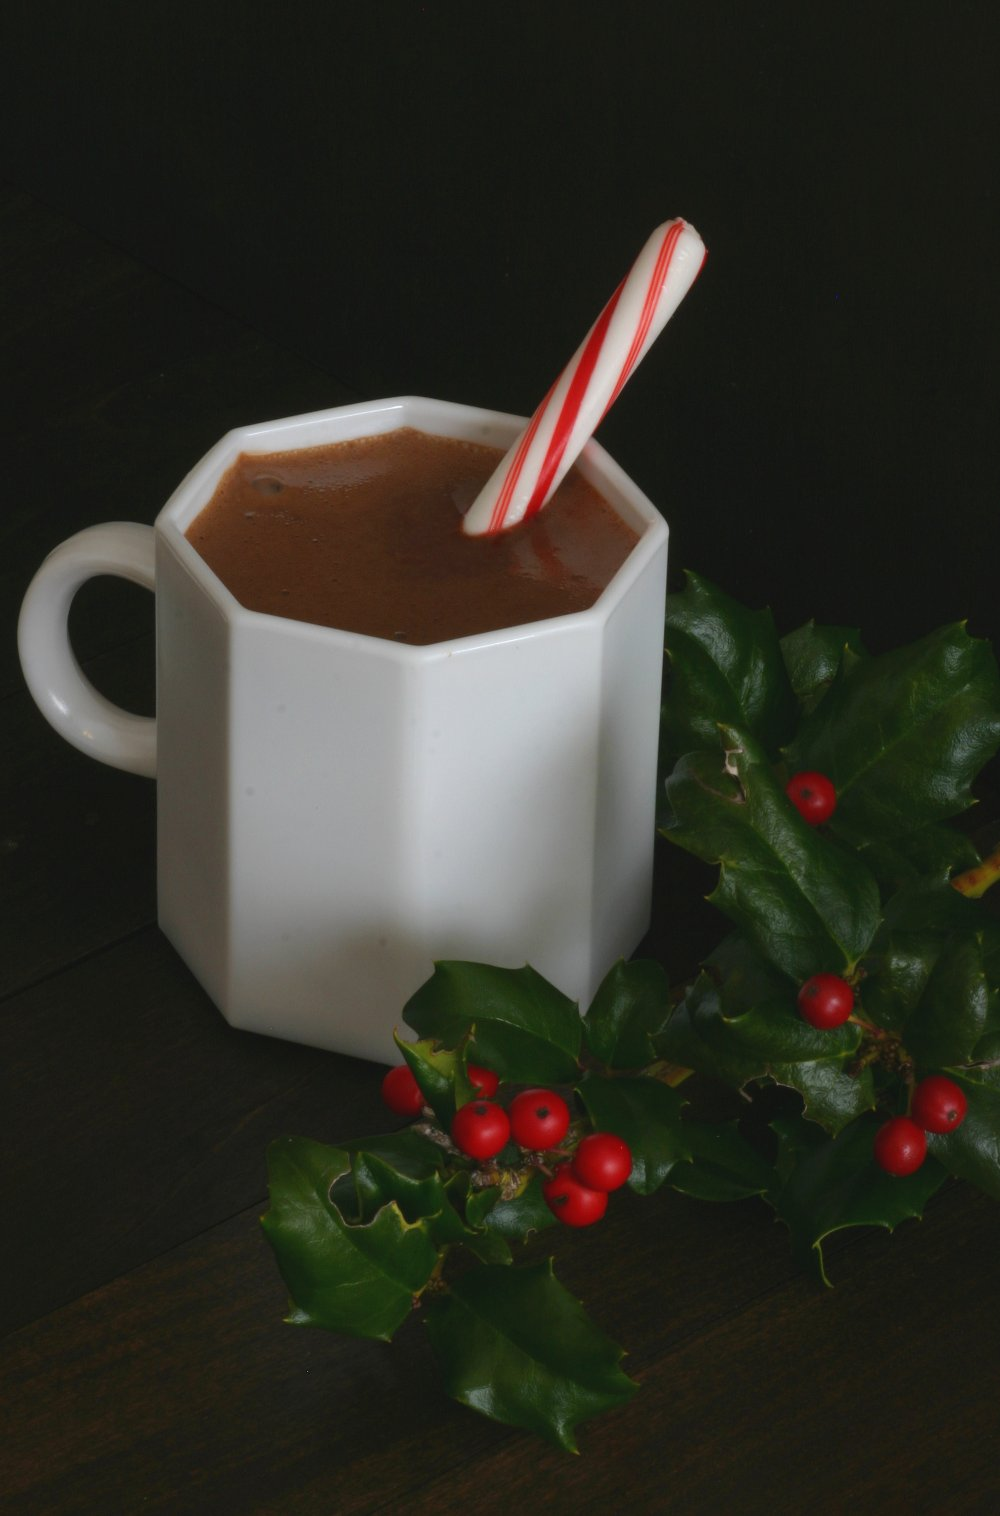 A 10-minute recipe for rich and decadent Vegan Hot Chocolate. Three optional variations: Mocha, Peppermint, and Mexican-style.